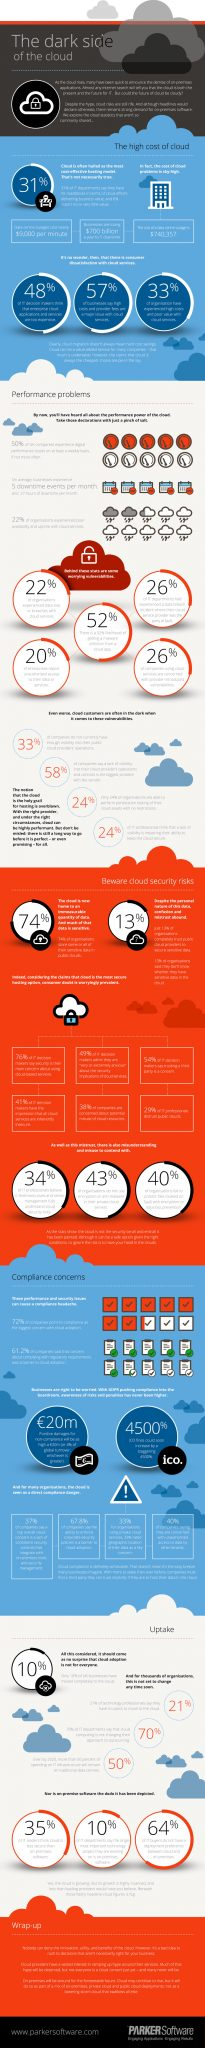 Infographic - Dark side of the cloud